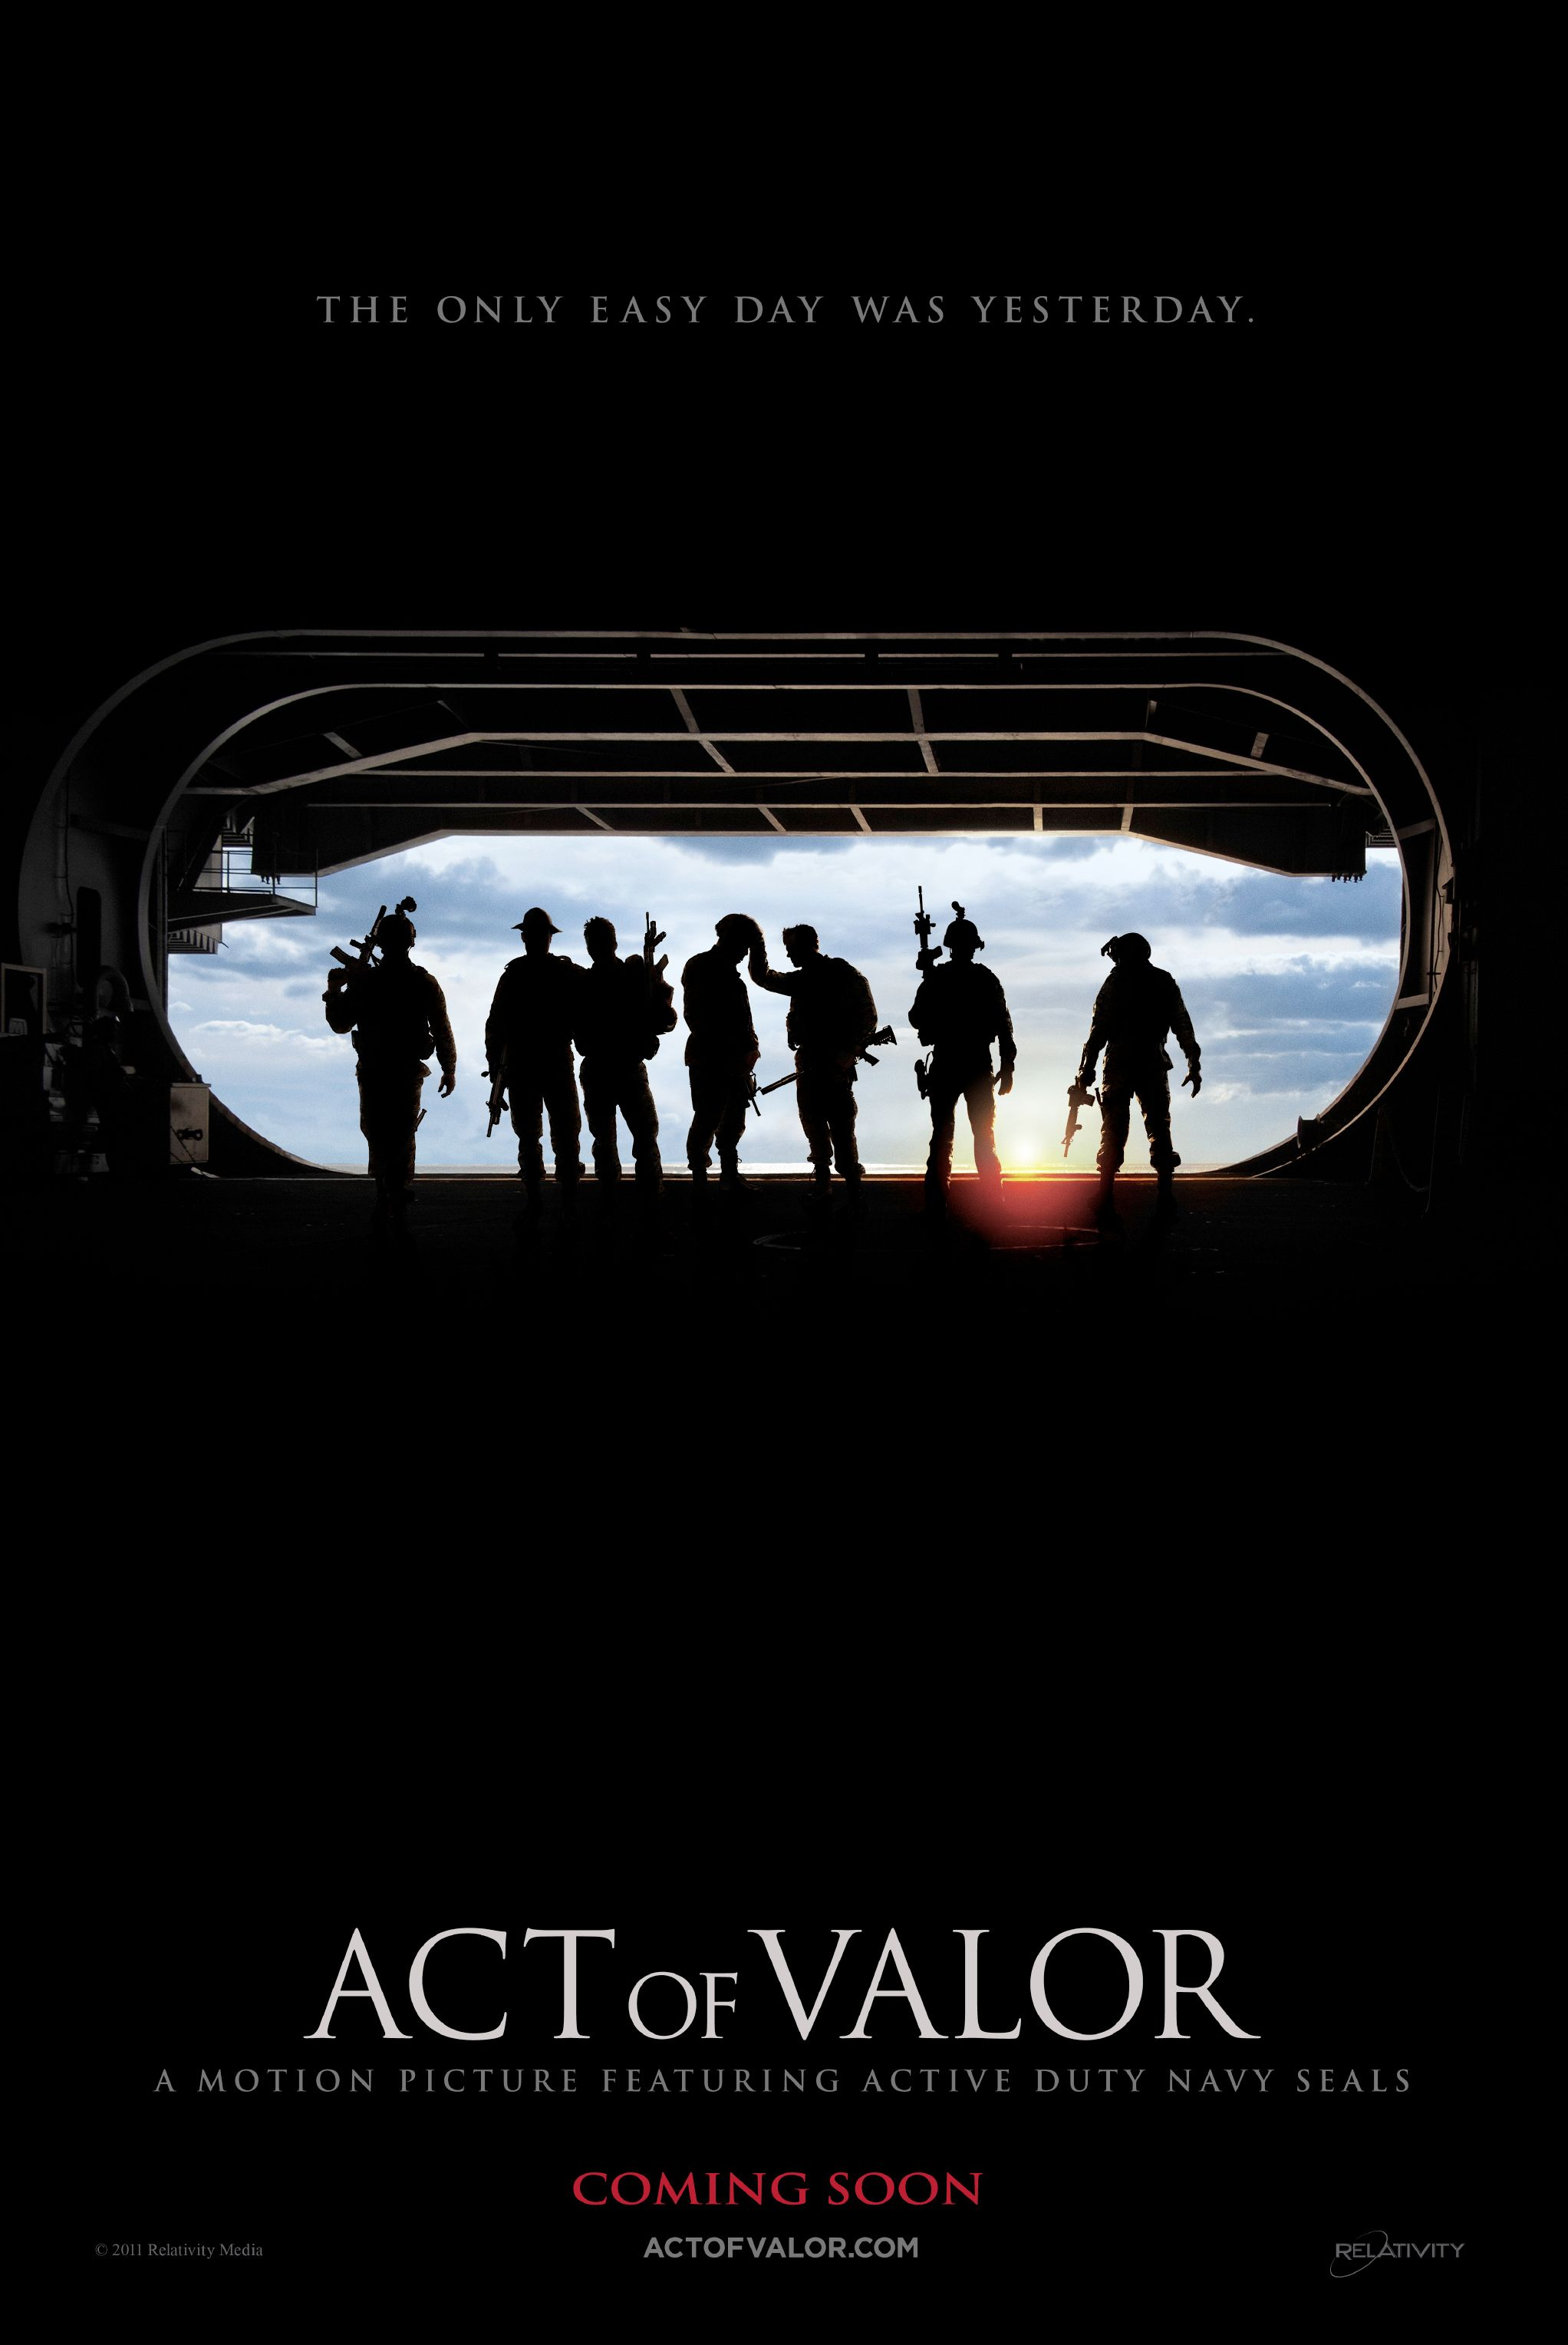 The act of valor